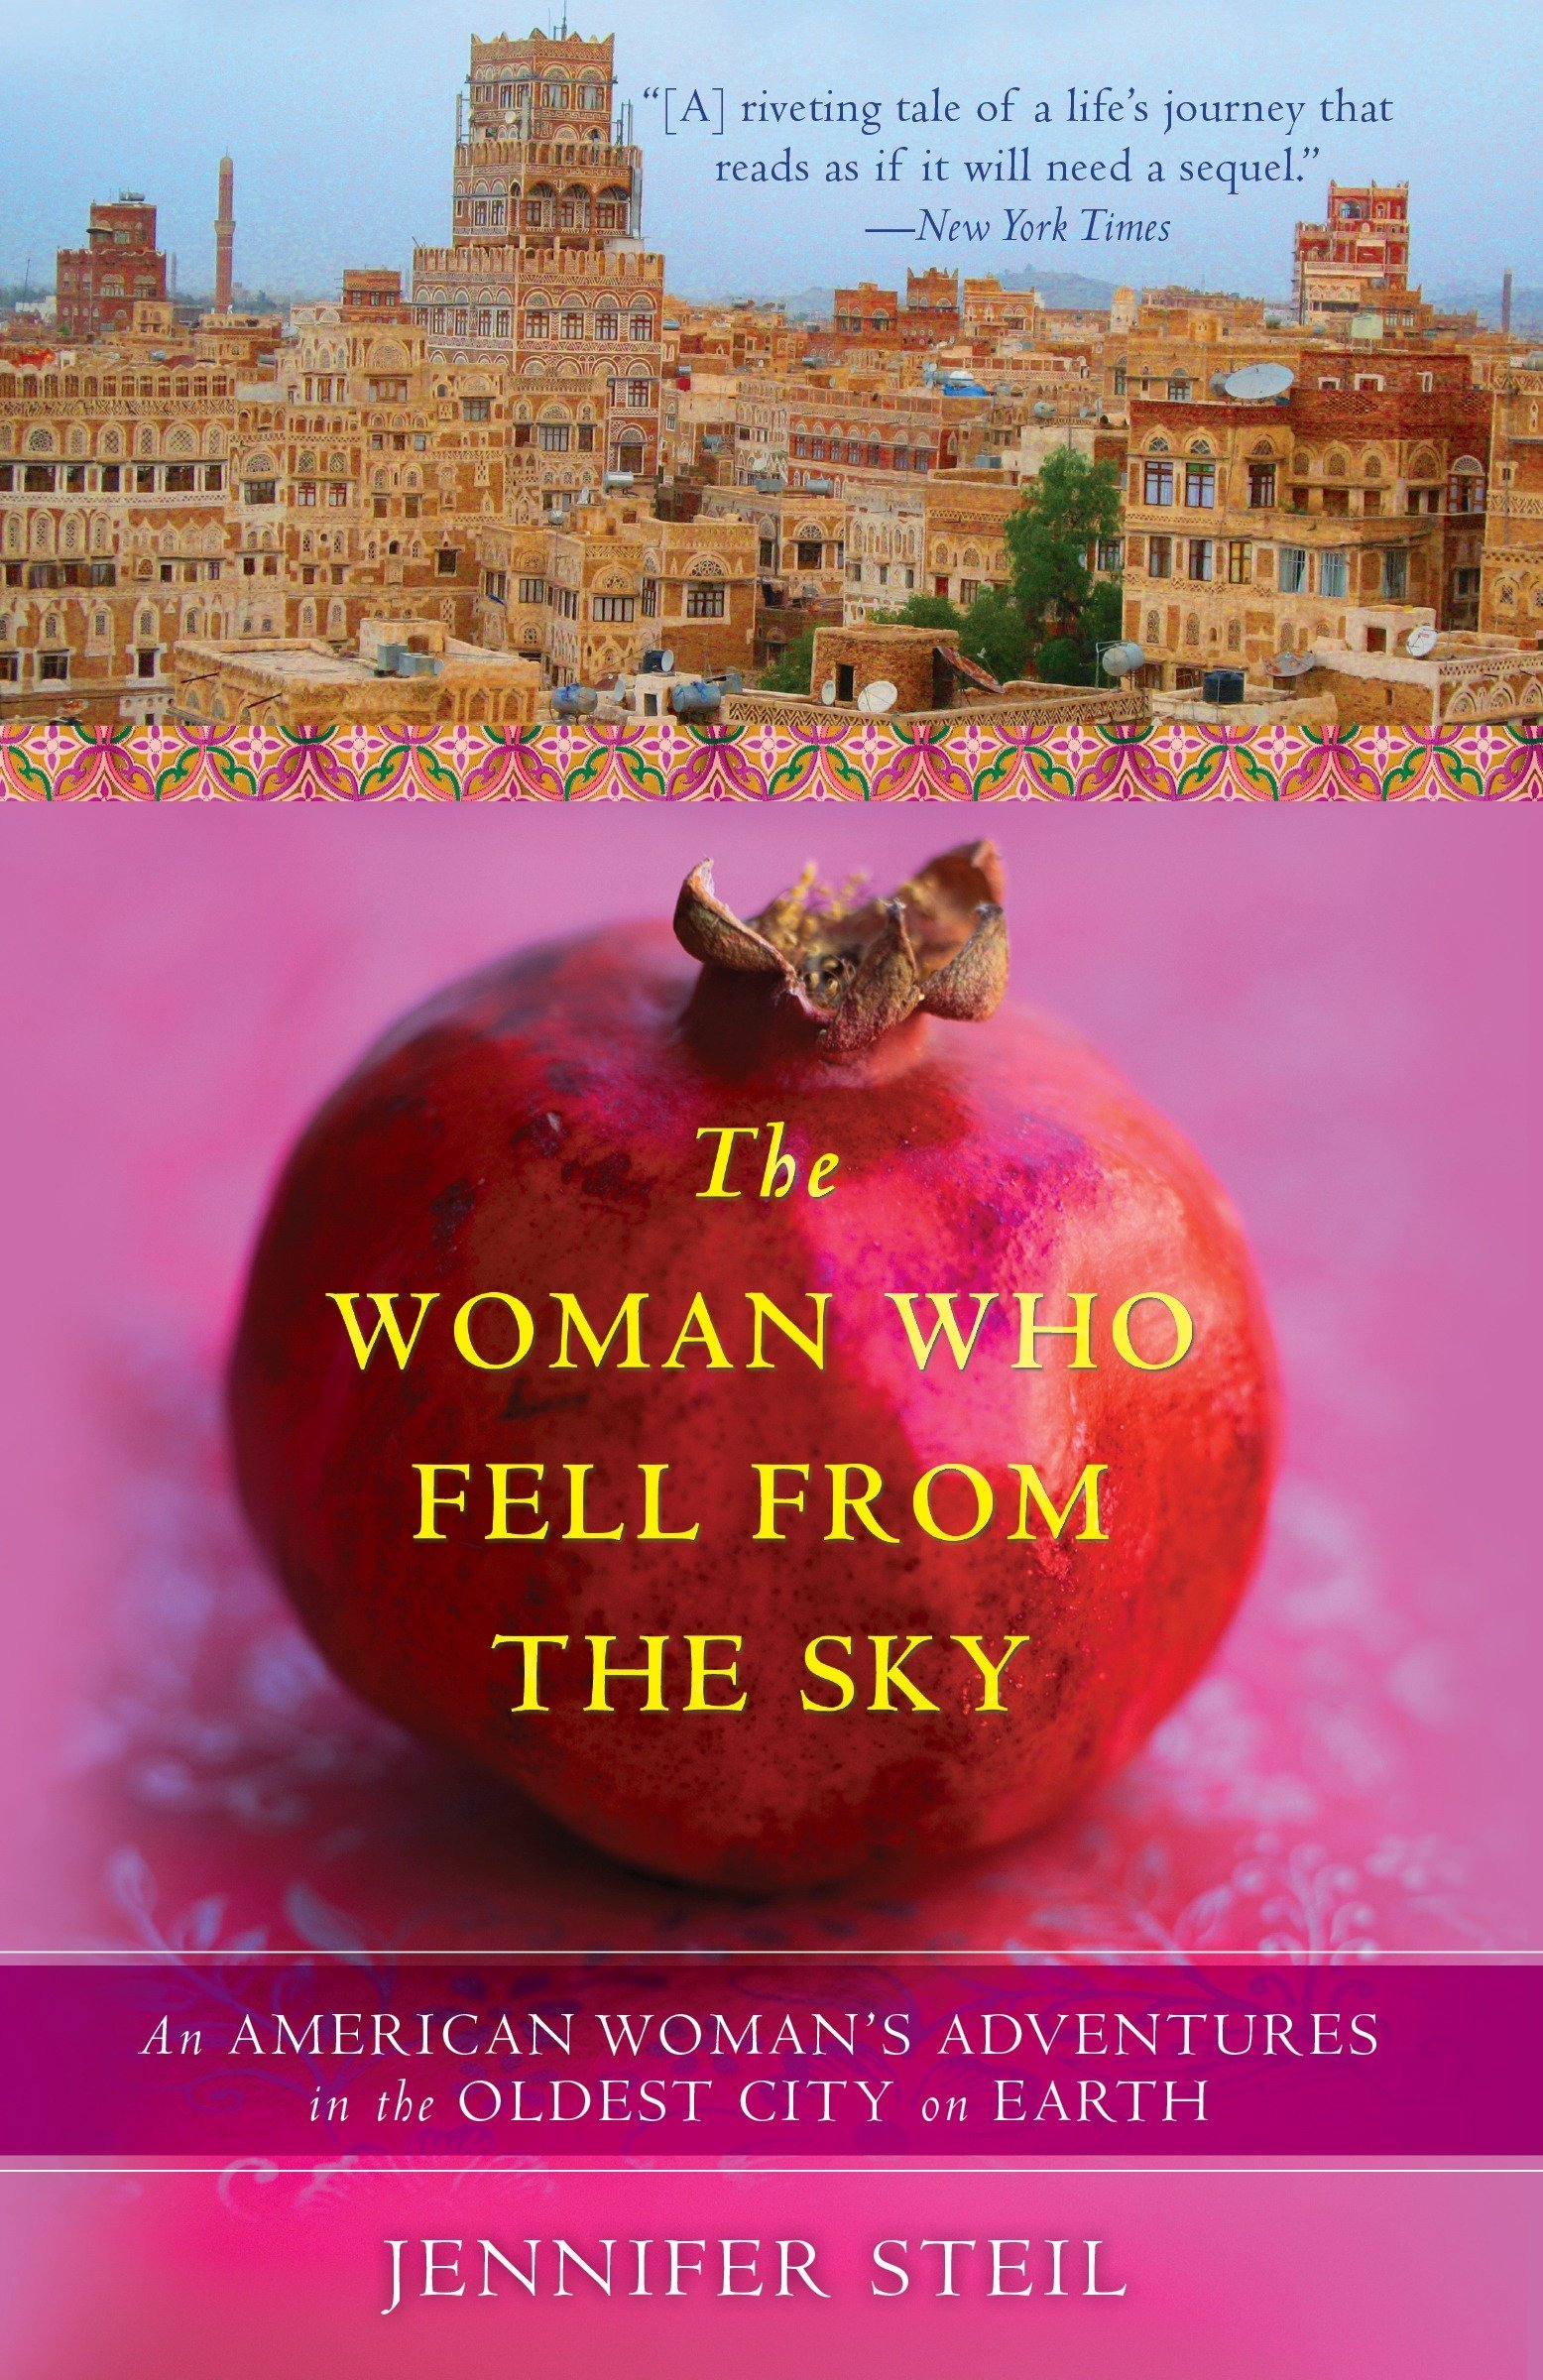 Download The Woman Who Fell from the Sky: An American Woman's Adventures in the Oldest City on Earth pdf epub